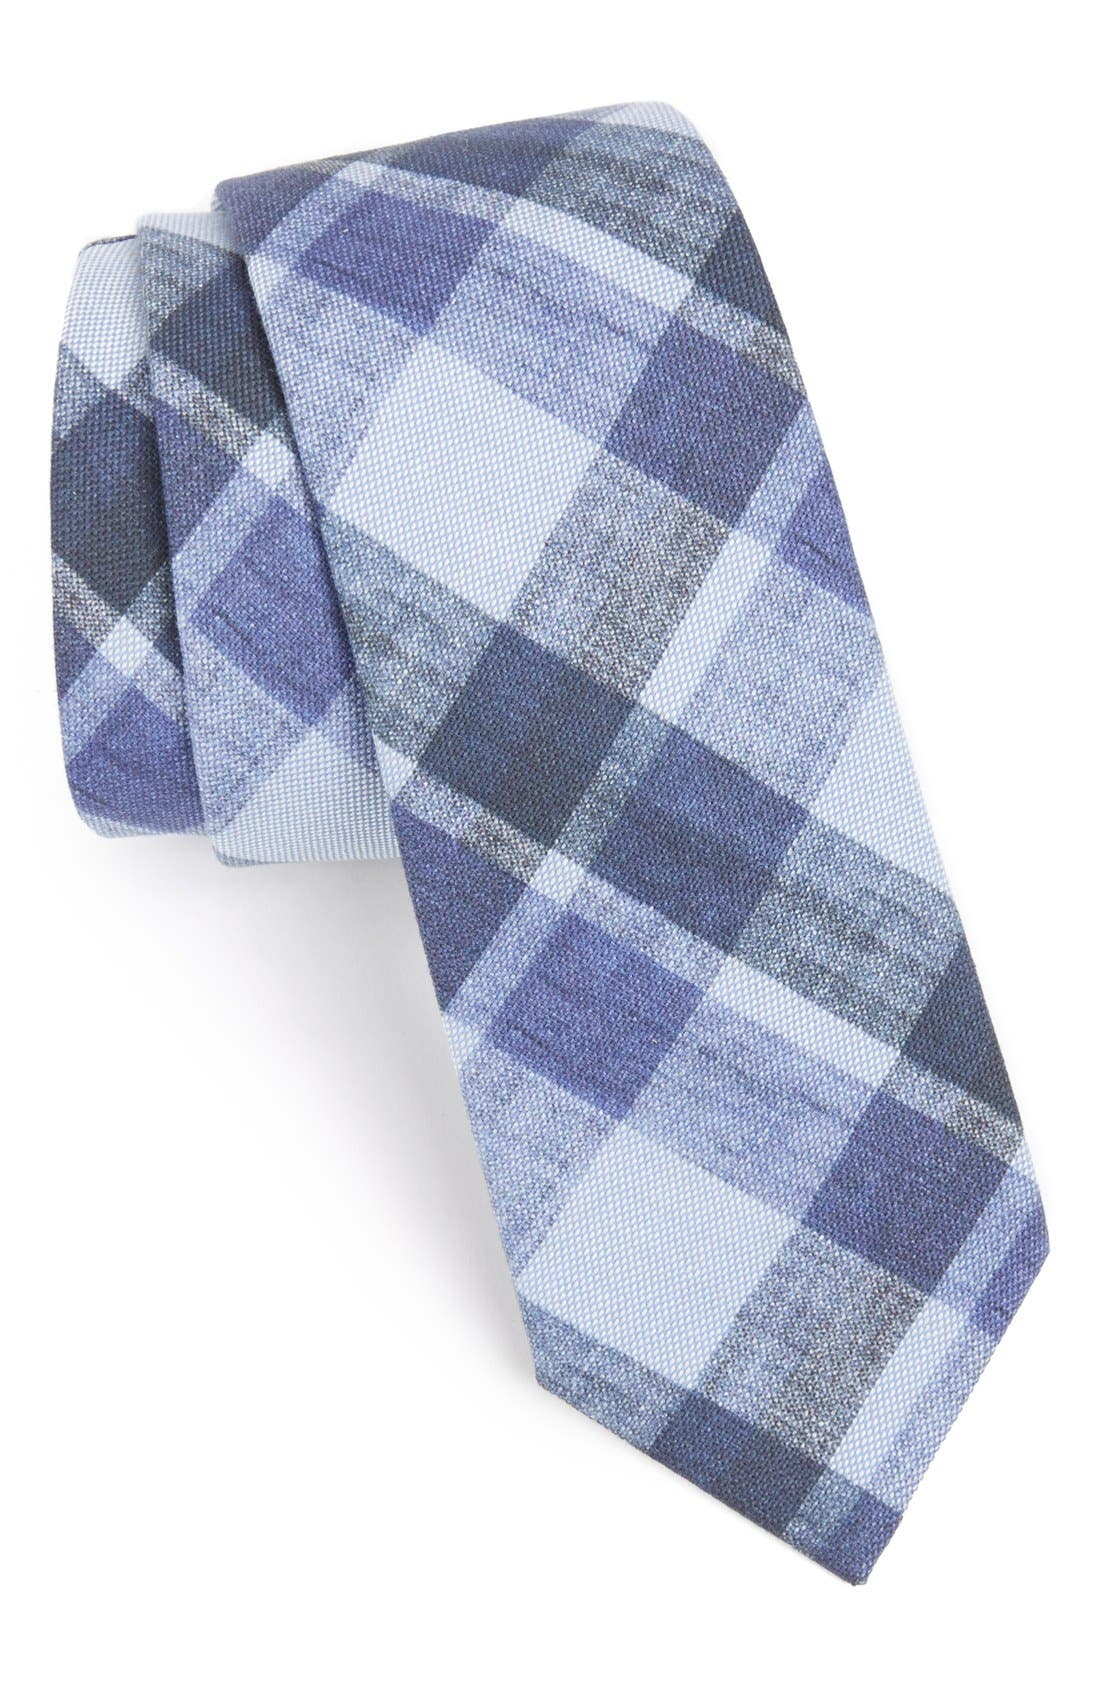 Alternate Image 1 Selected - Gitman Blue Plaid Denim Tie